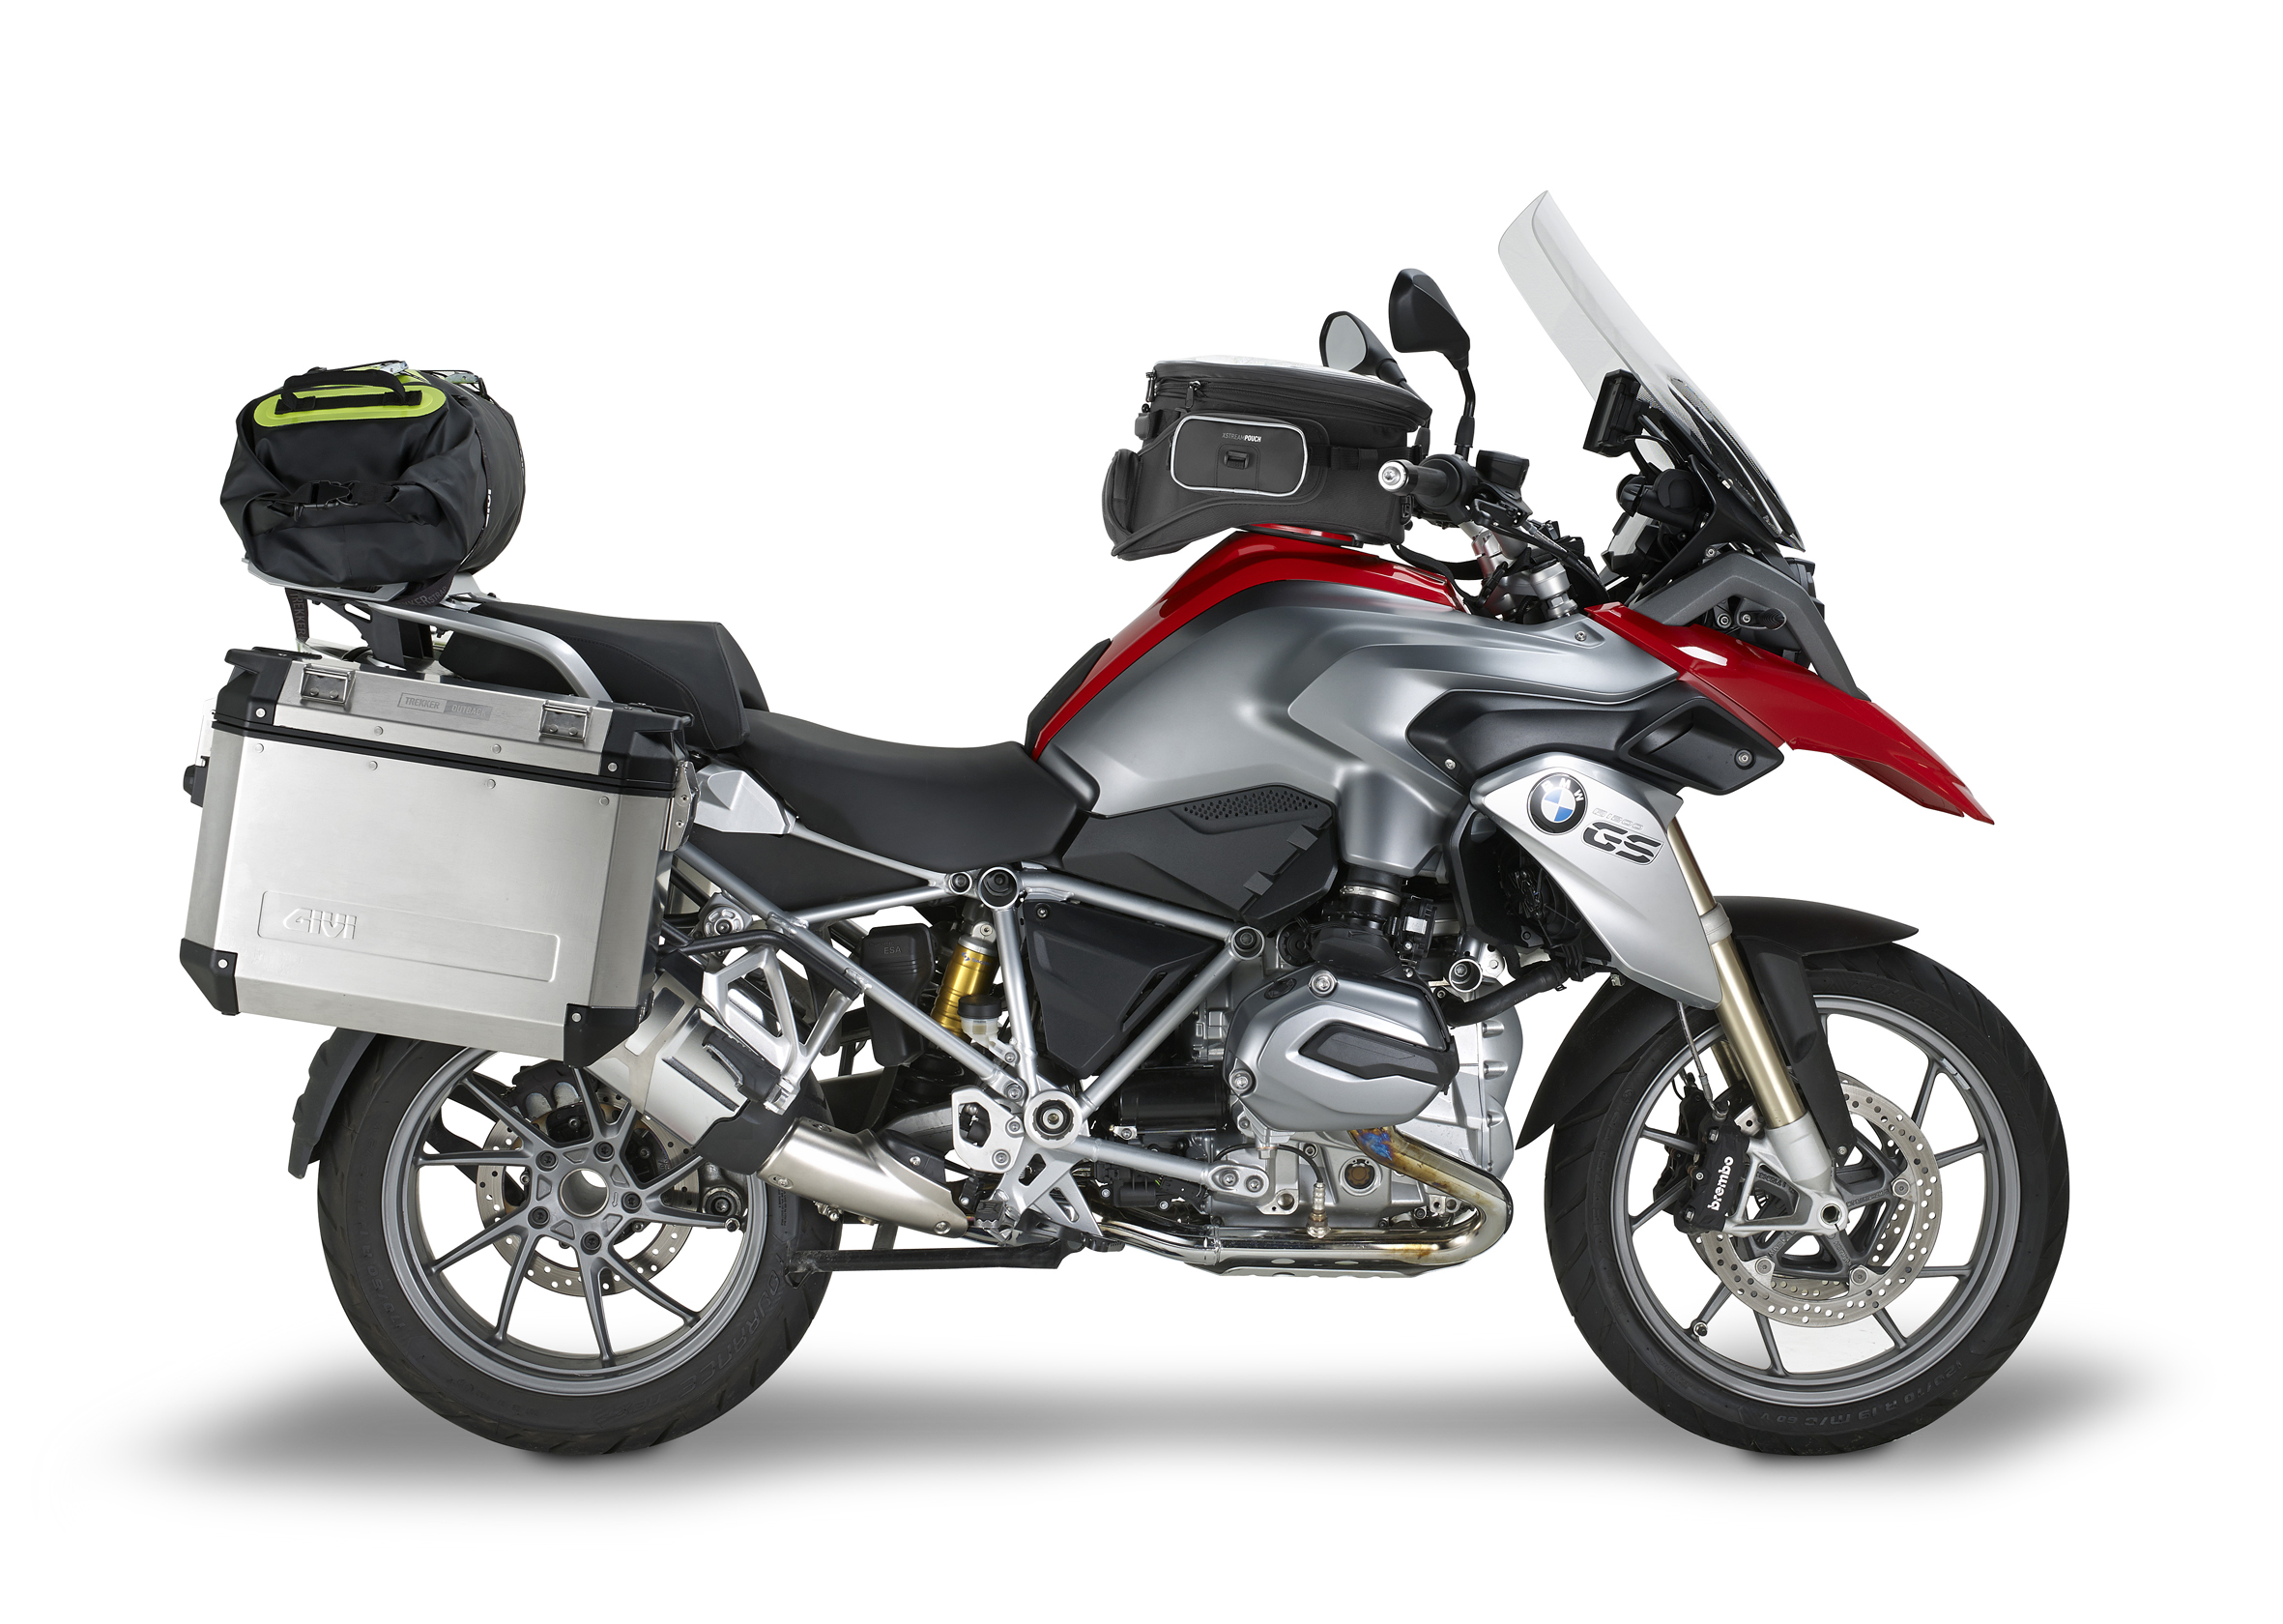 givi veste da viaggio la bmw r 1200 gs 2013. Black Bedroom Furniture Sets. Home Design Ideas